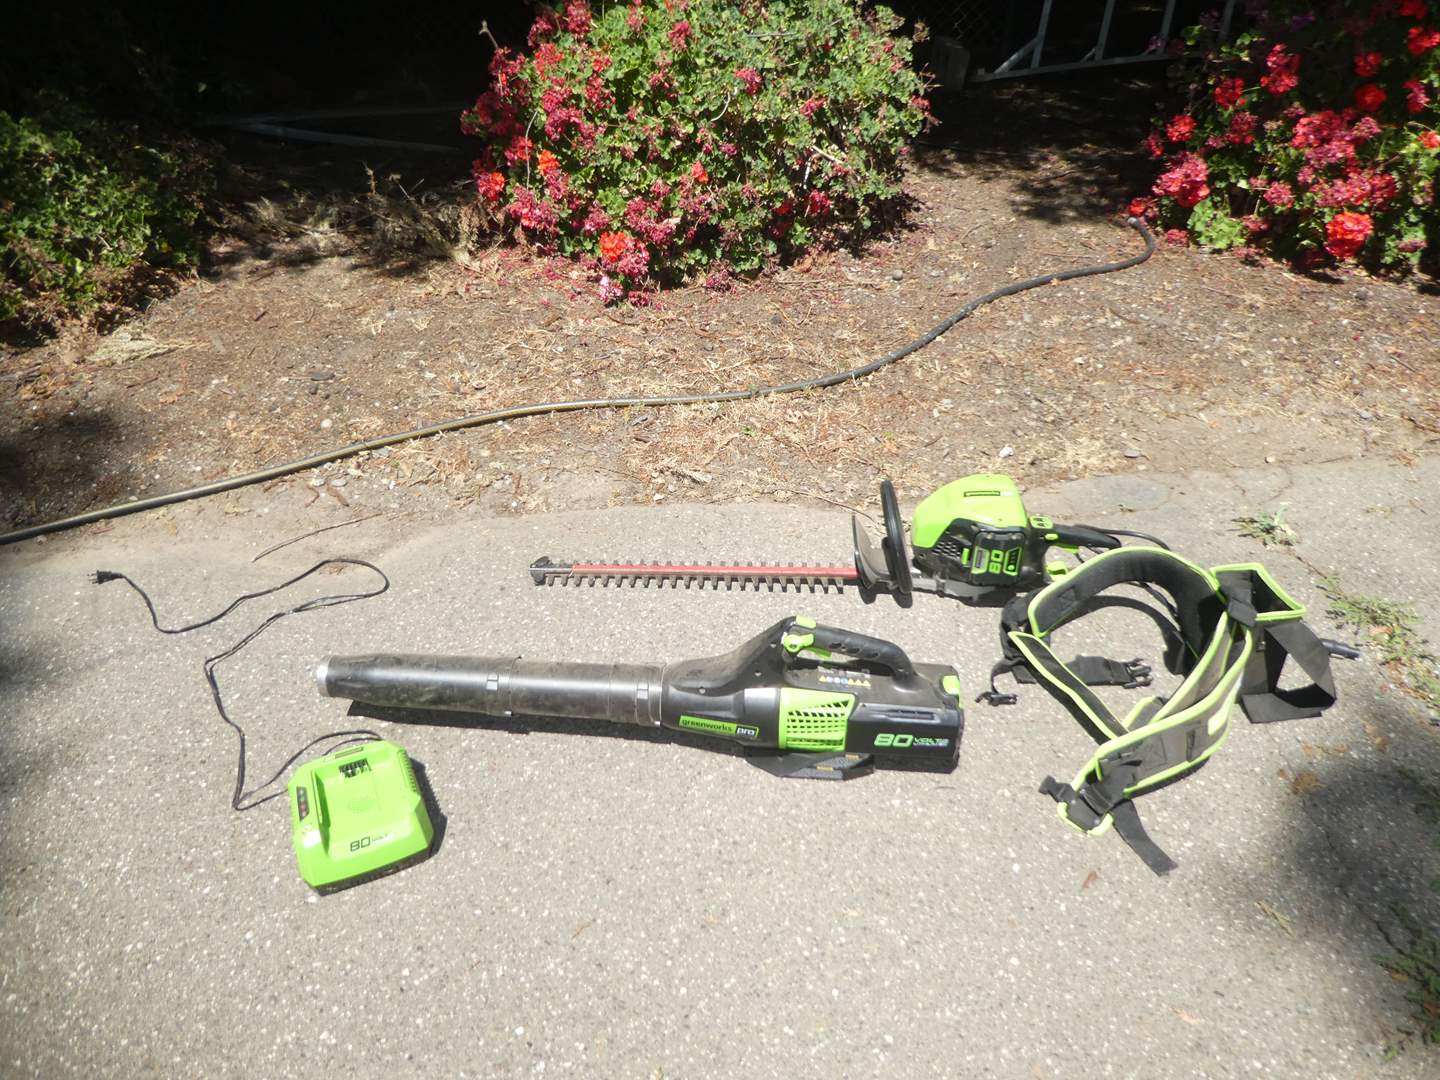 Lot # 228 - Greenworks Pro Blower and Hedge Trimmer